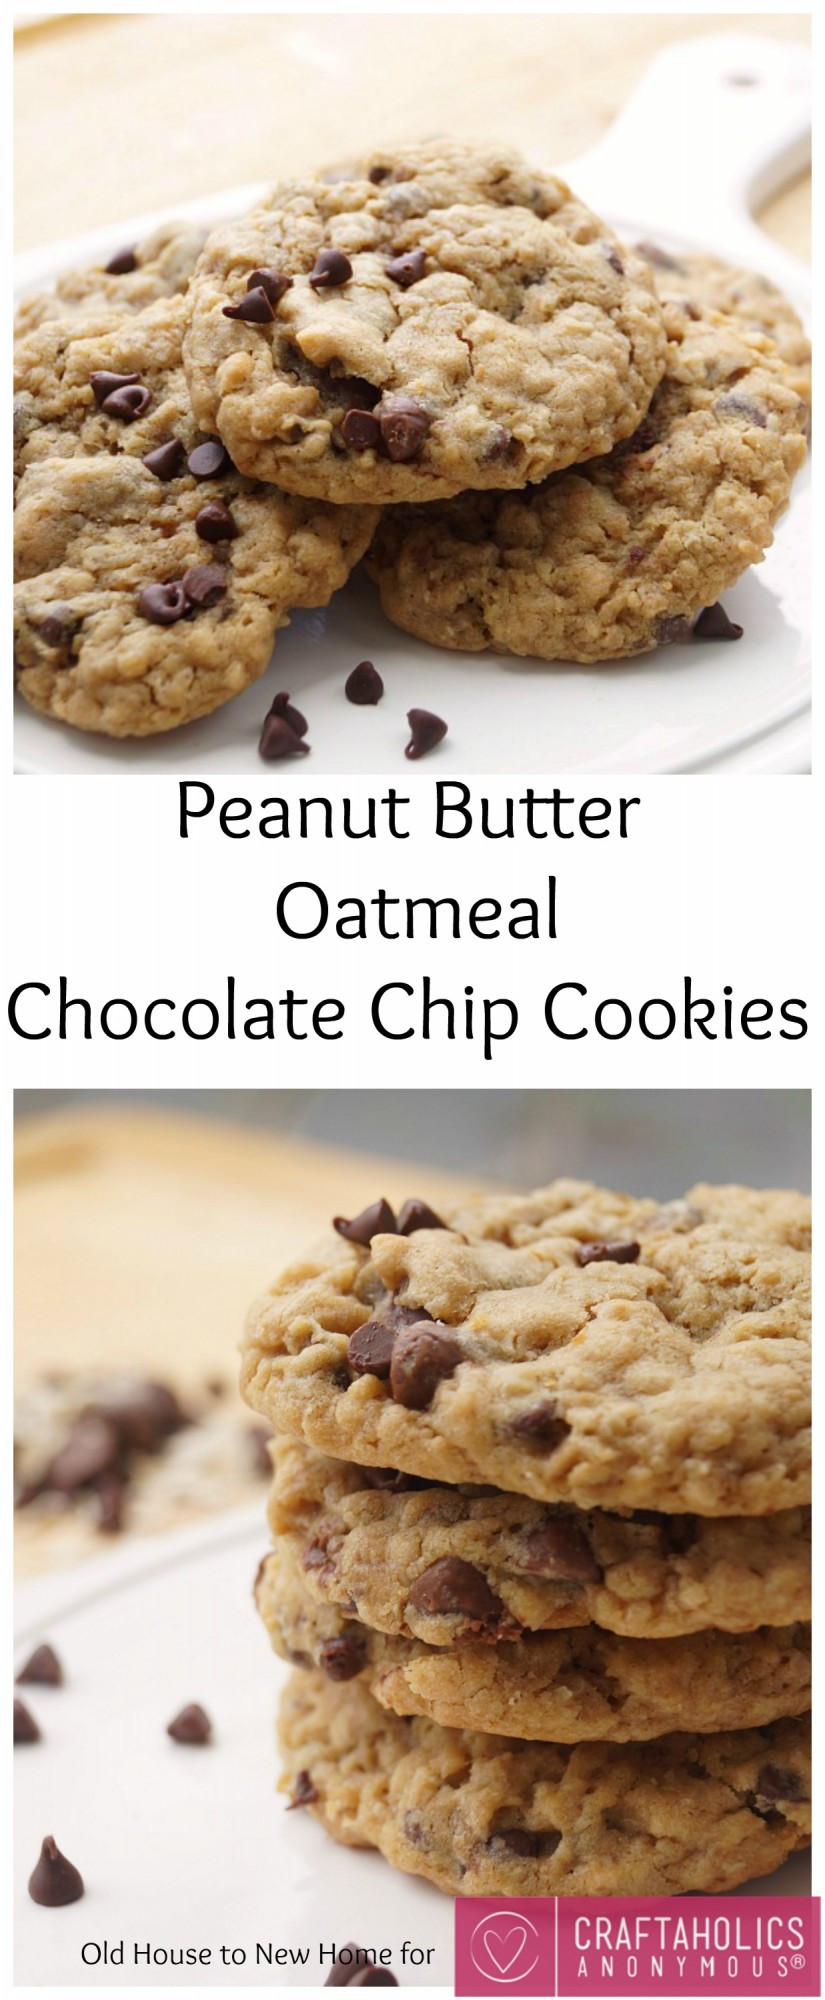 Peanut Butter Chocolate Chip Oatmeal Cookies  Craftaholics Anonymous